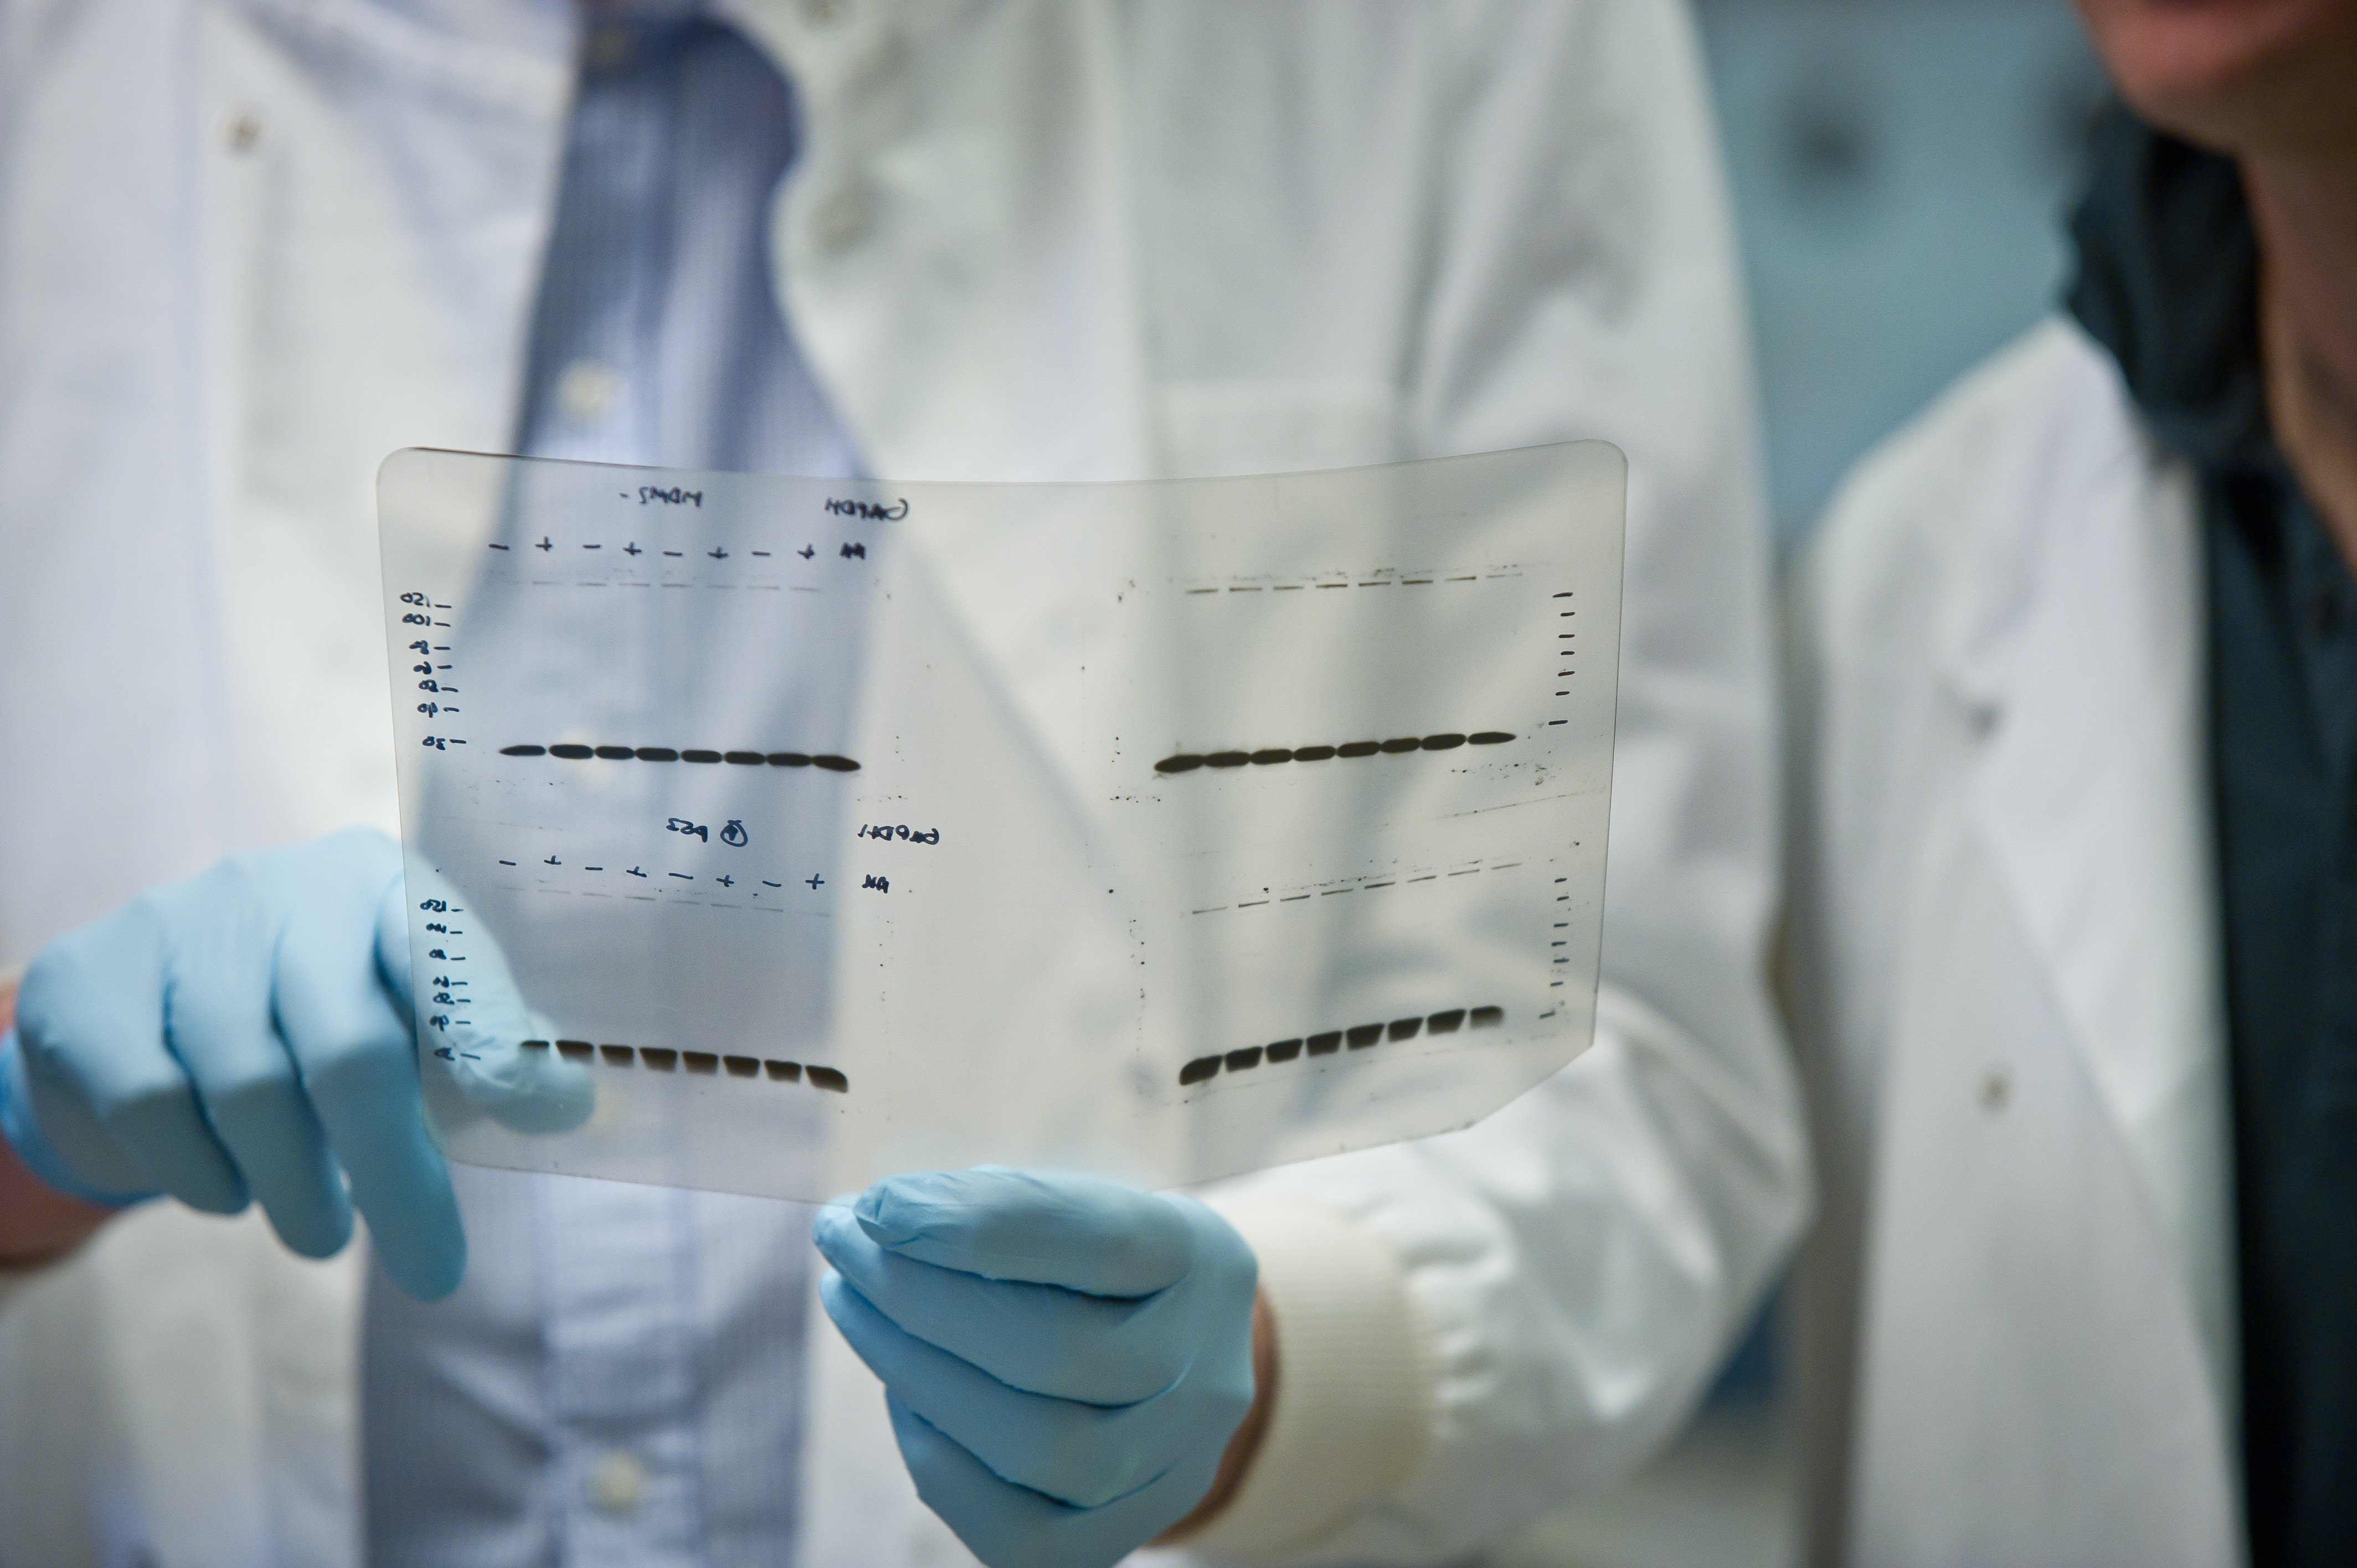 General image - lab research